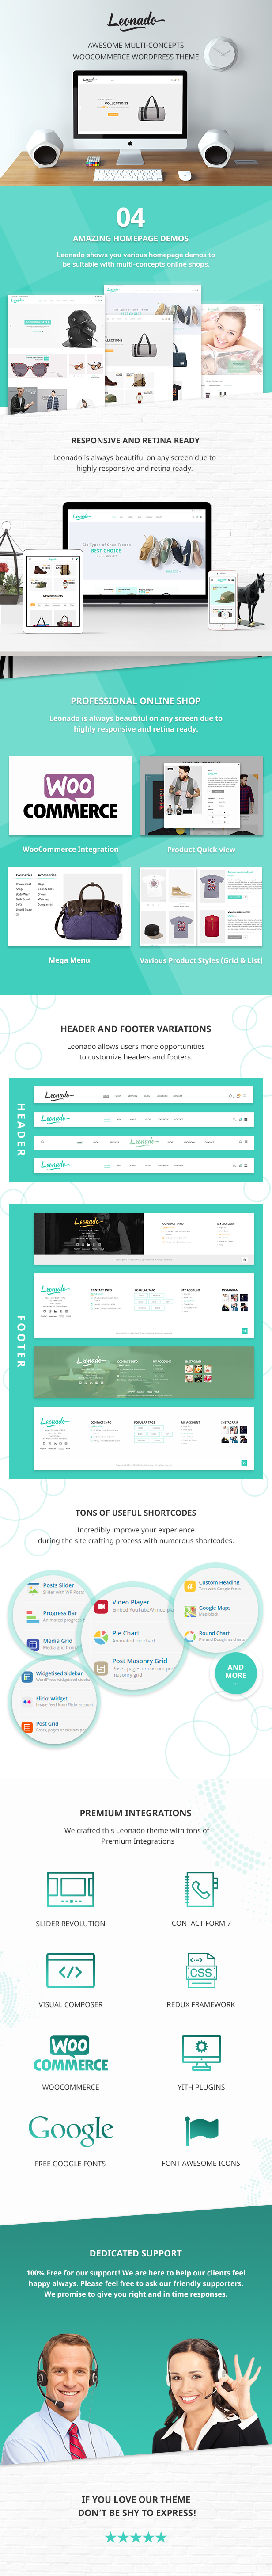 Leonado - Multi-Concepts WooCommerce WordPress Theme - 1